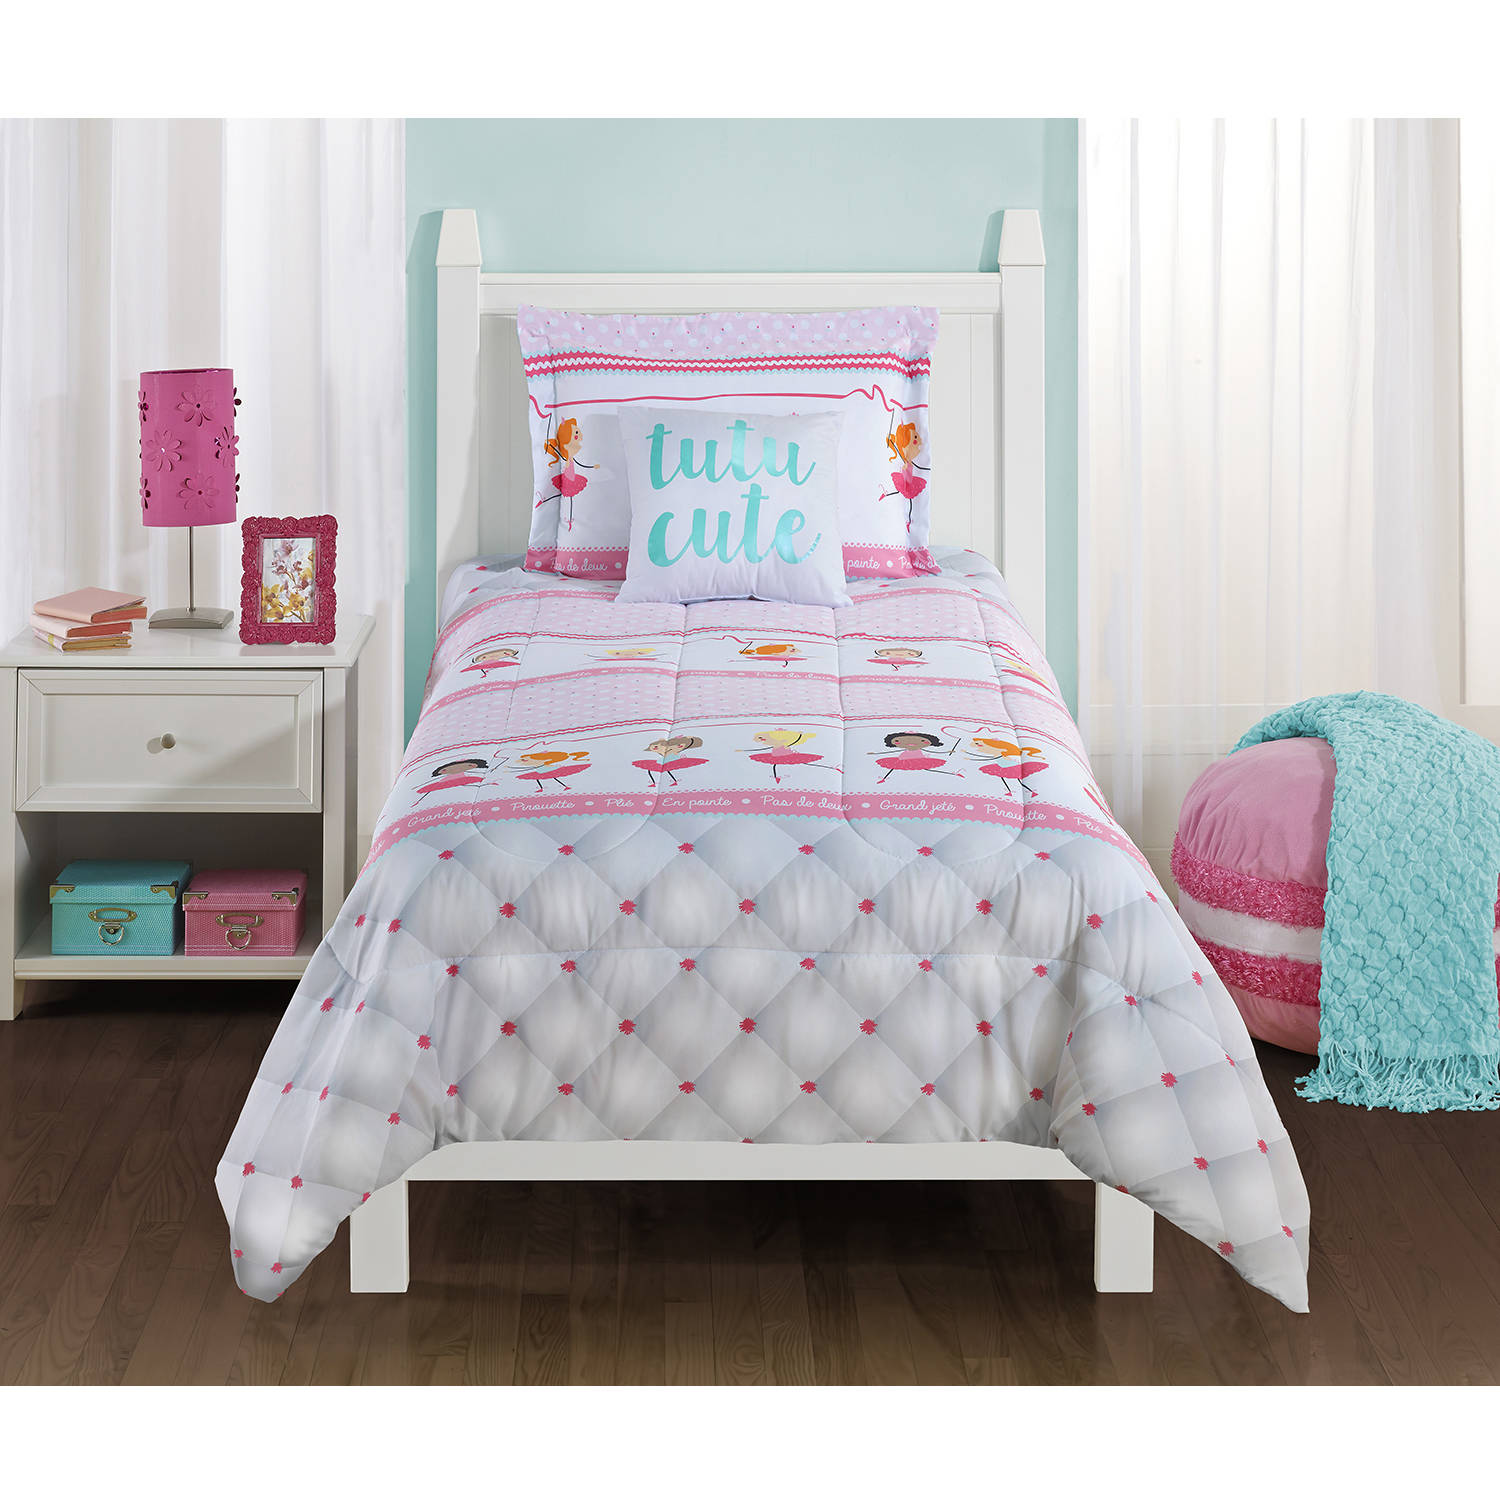 Mainstays Kids Ballerina Bedding Comforter Set